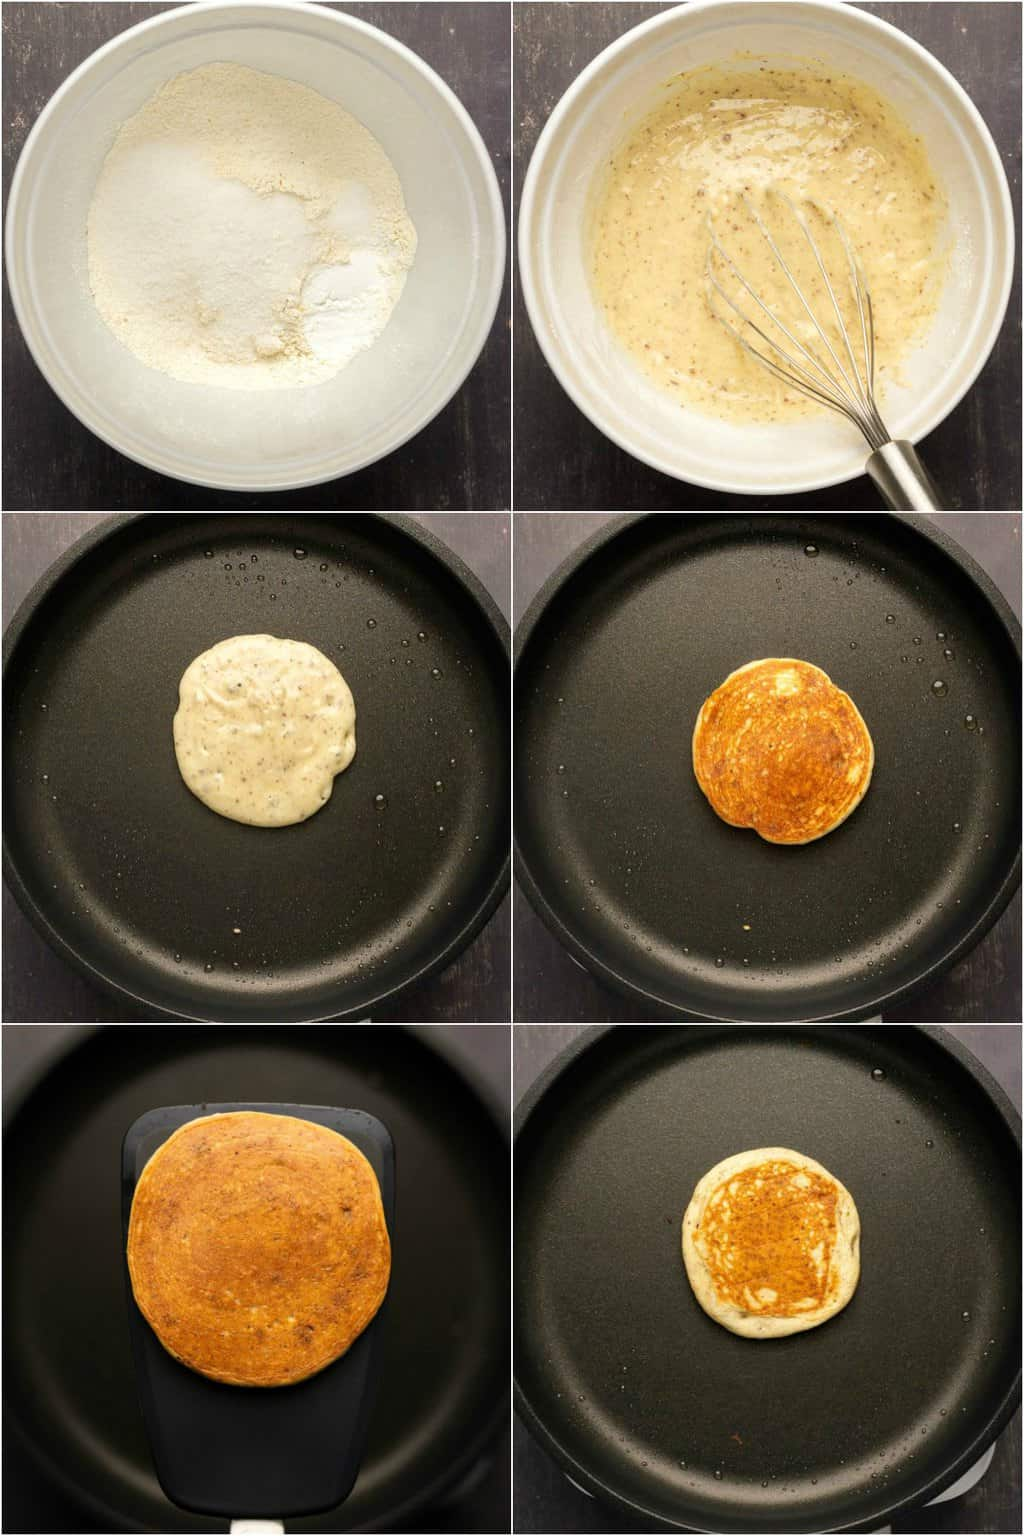 Step by step process photo collage of making vegan gluten free pancakes